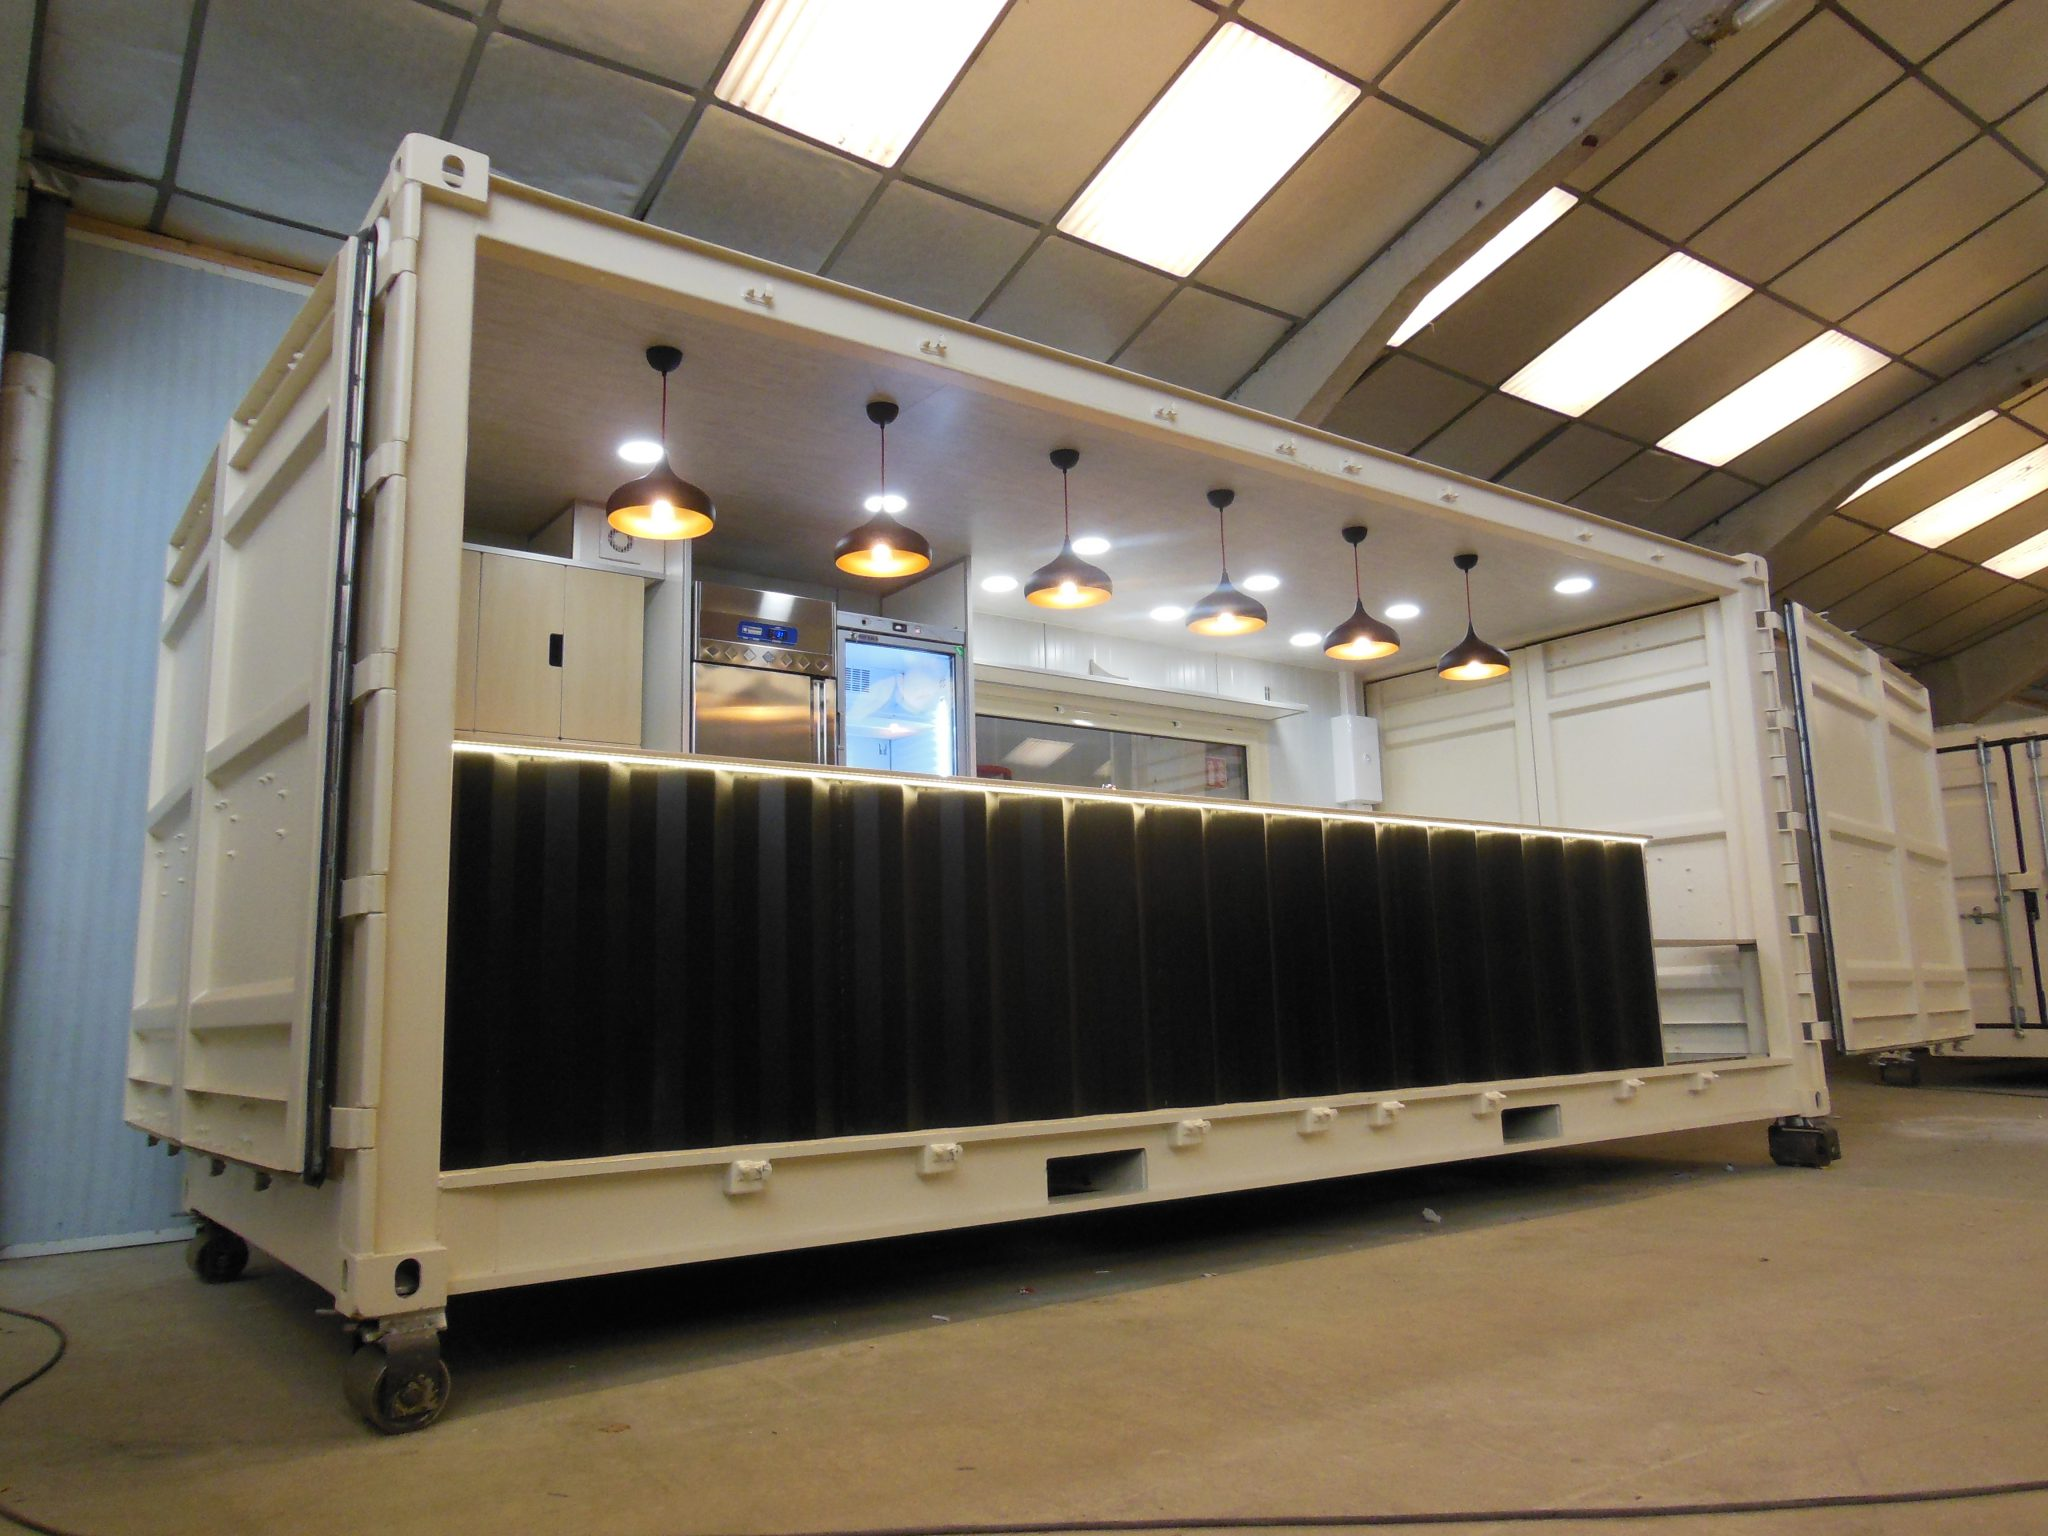 Module h container ph m re bar by hedimag fabricant de for Fabricant conteneur